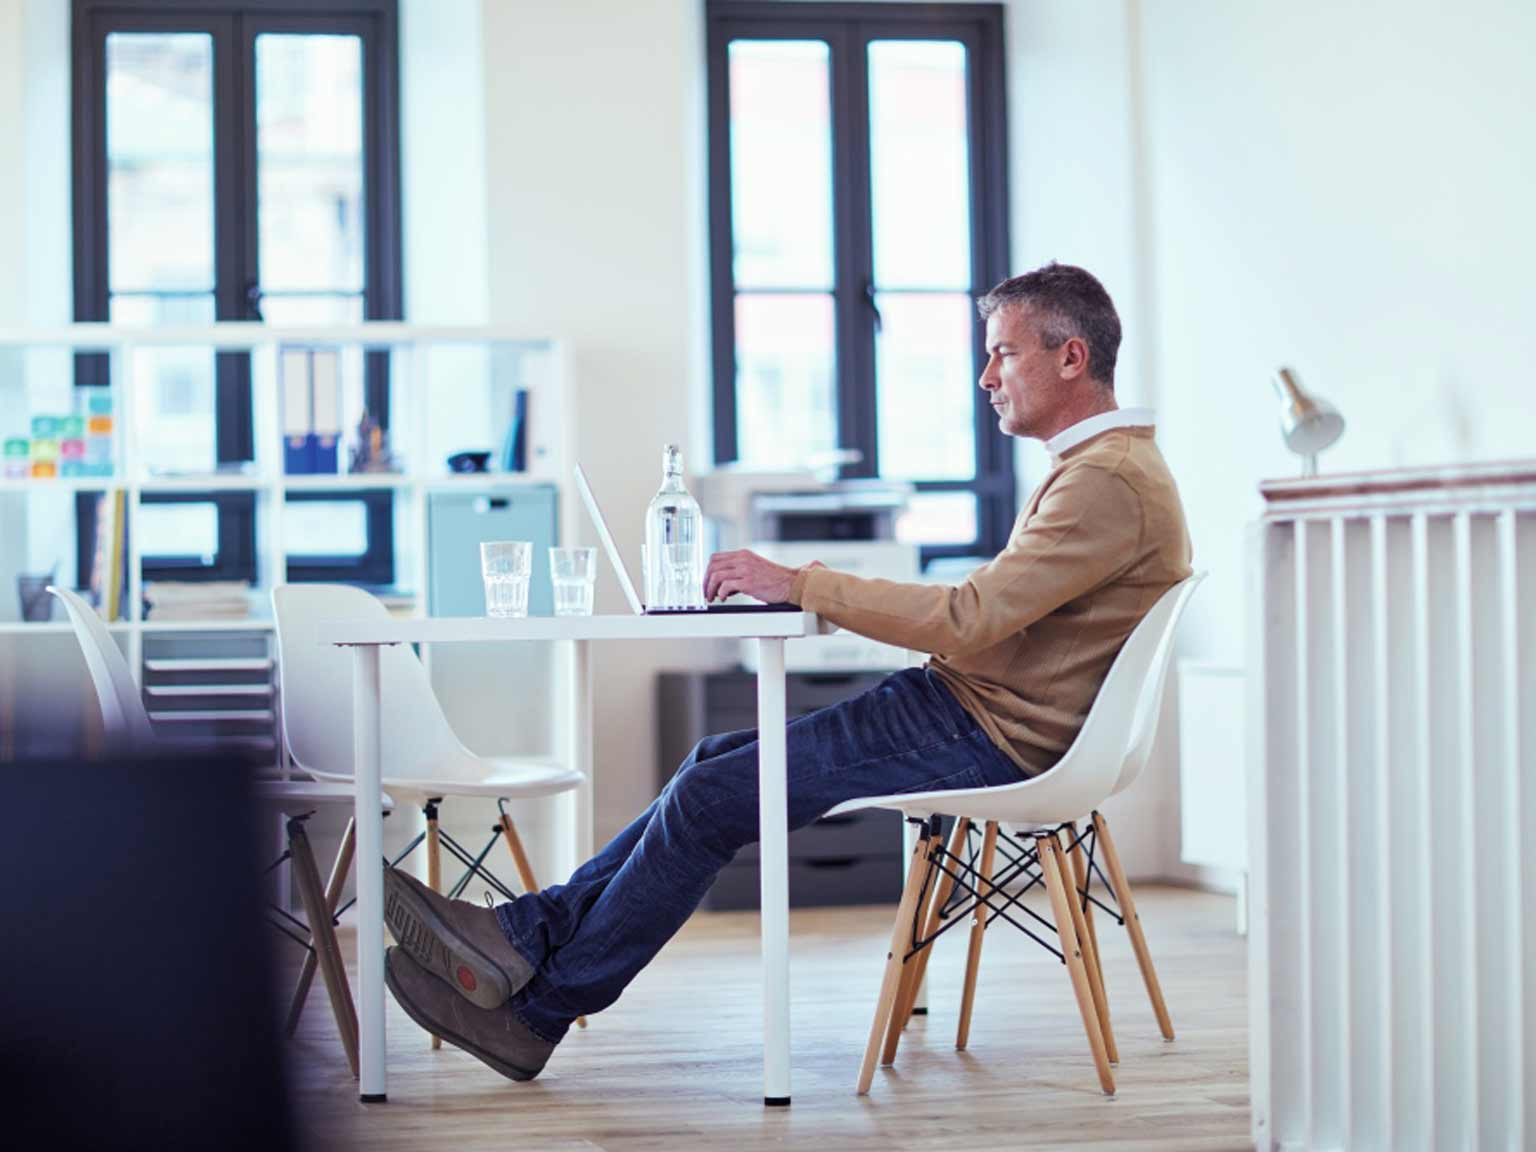 Man sat at a desk working on a laptop